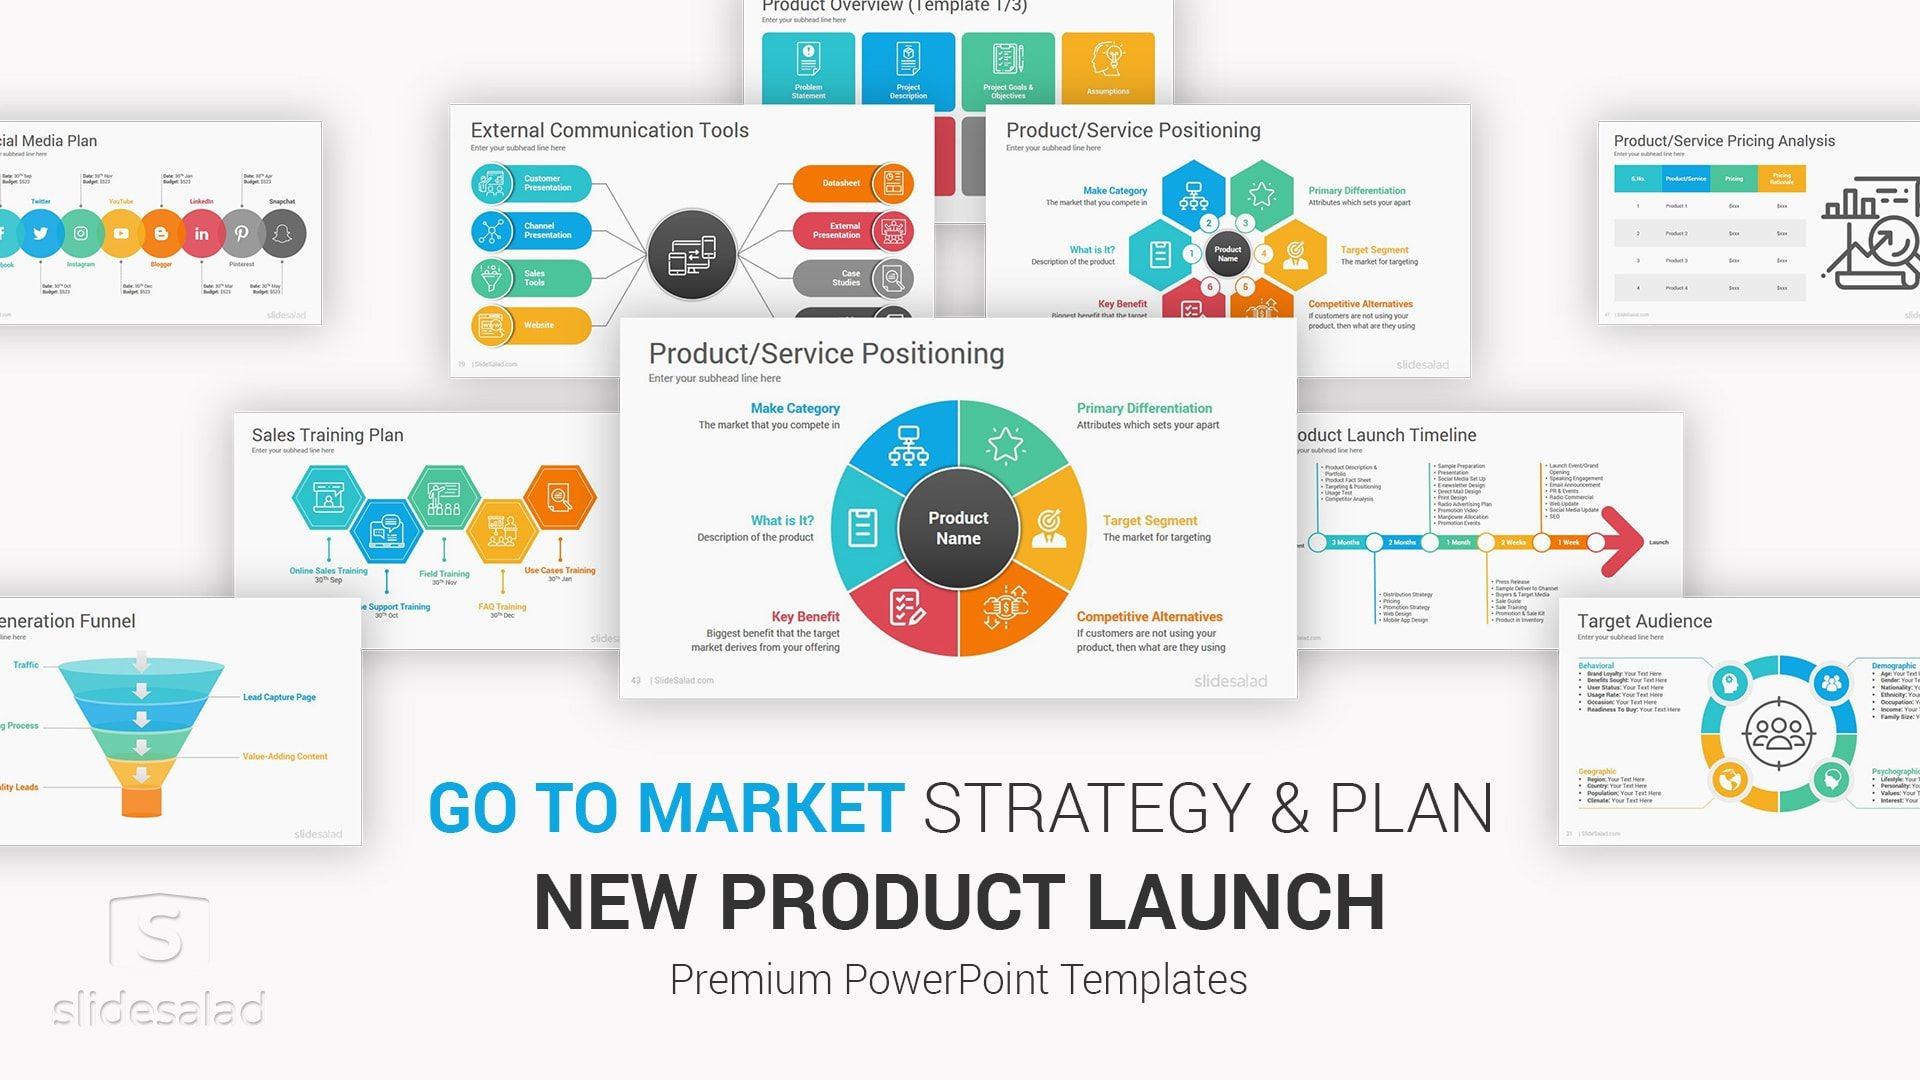 003 Excellent Product Launch Plan Powerpoint Template Free Example 1920